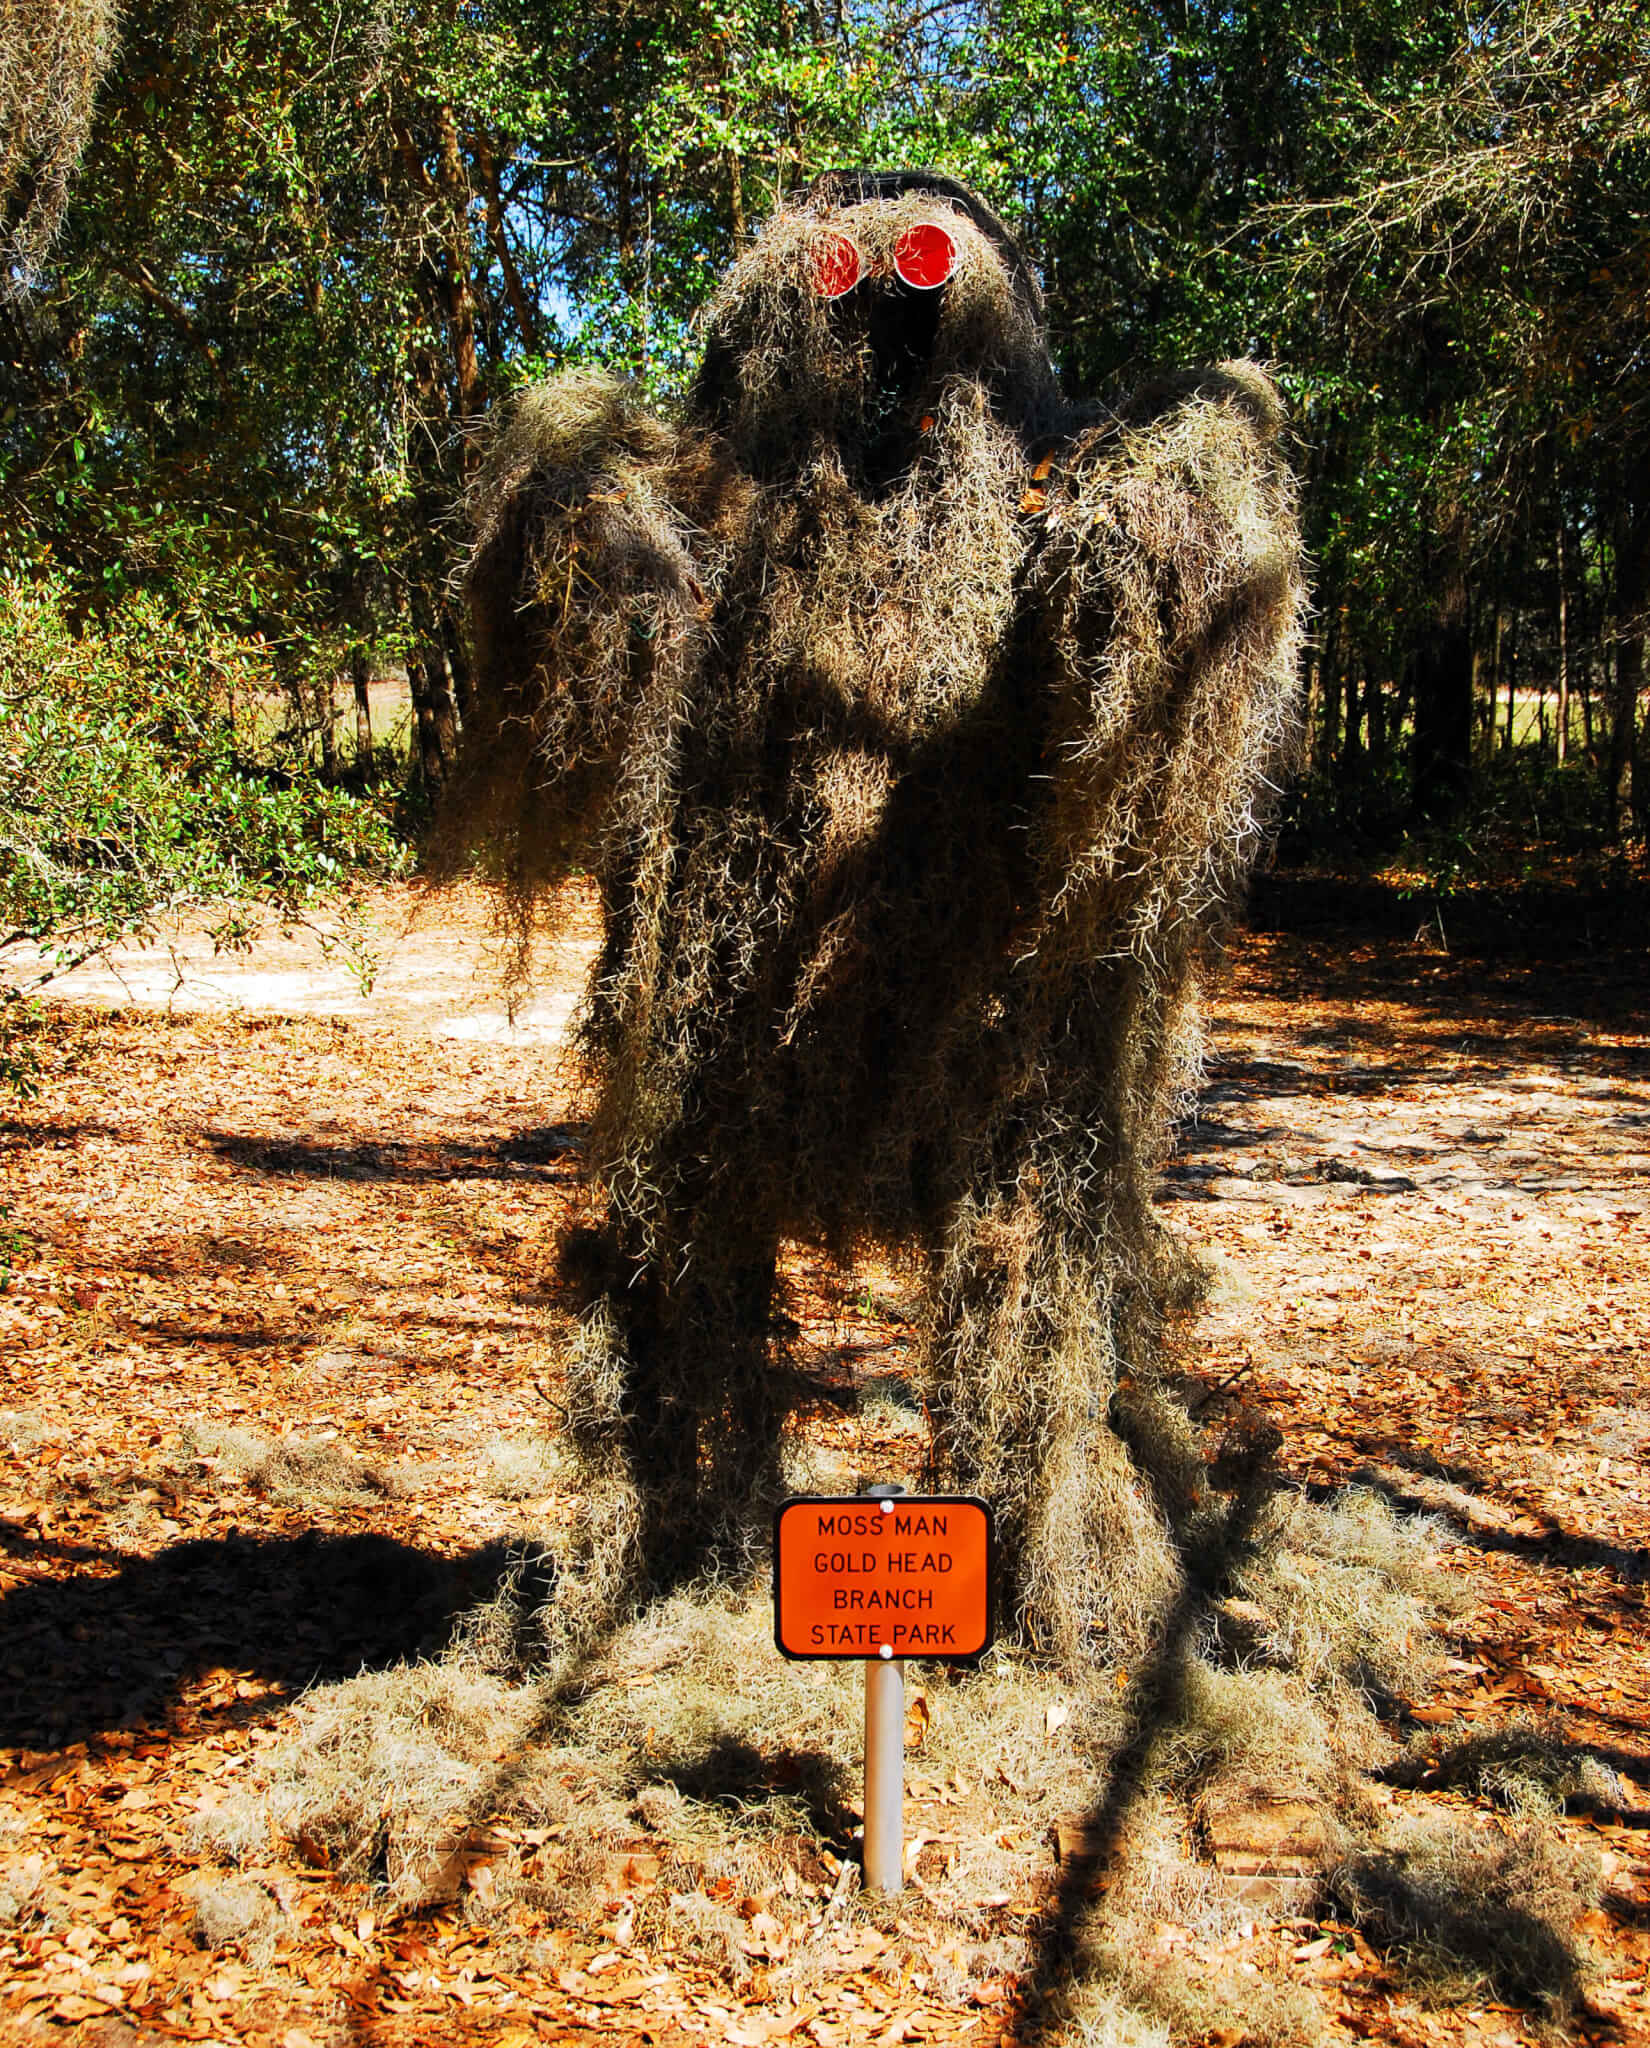 The Legend of Florida's Moss Man